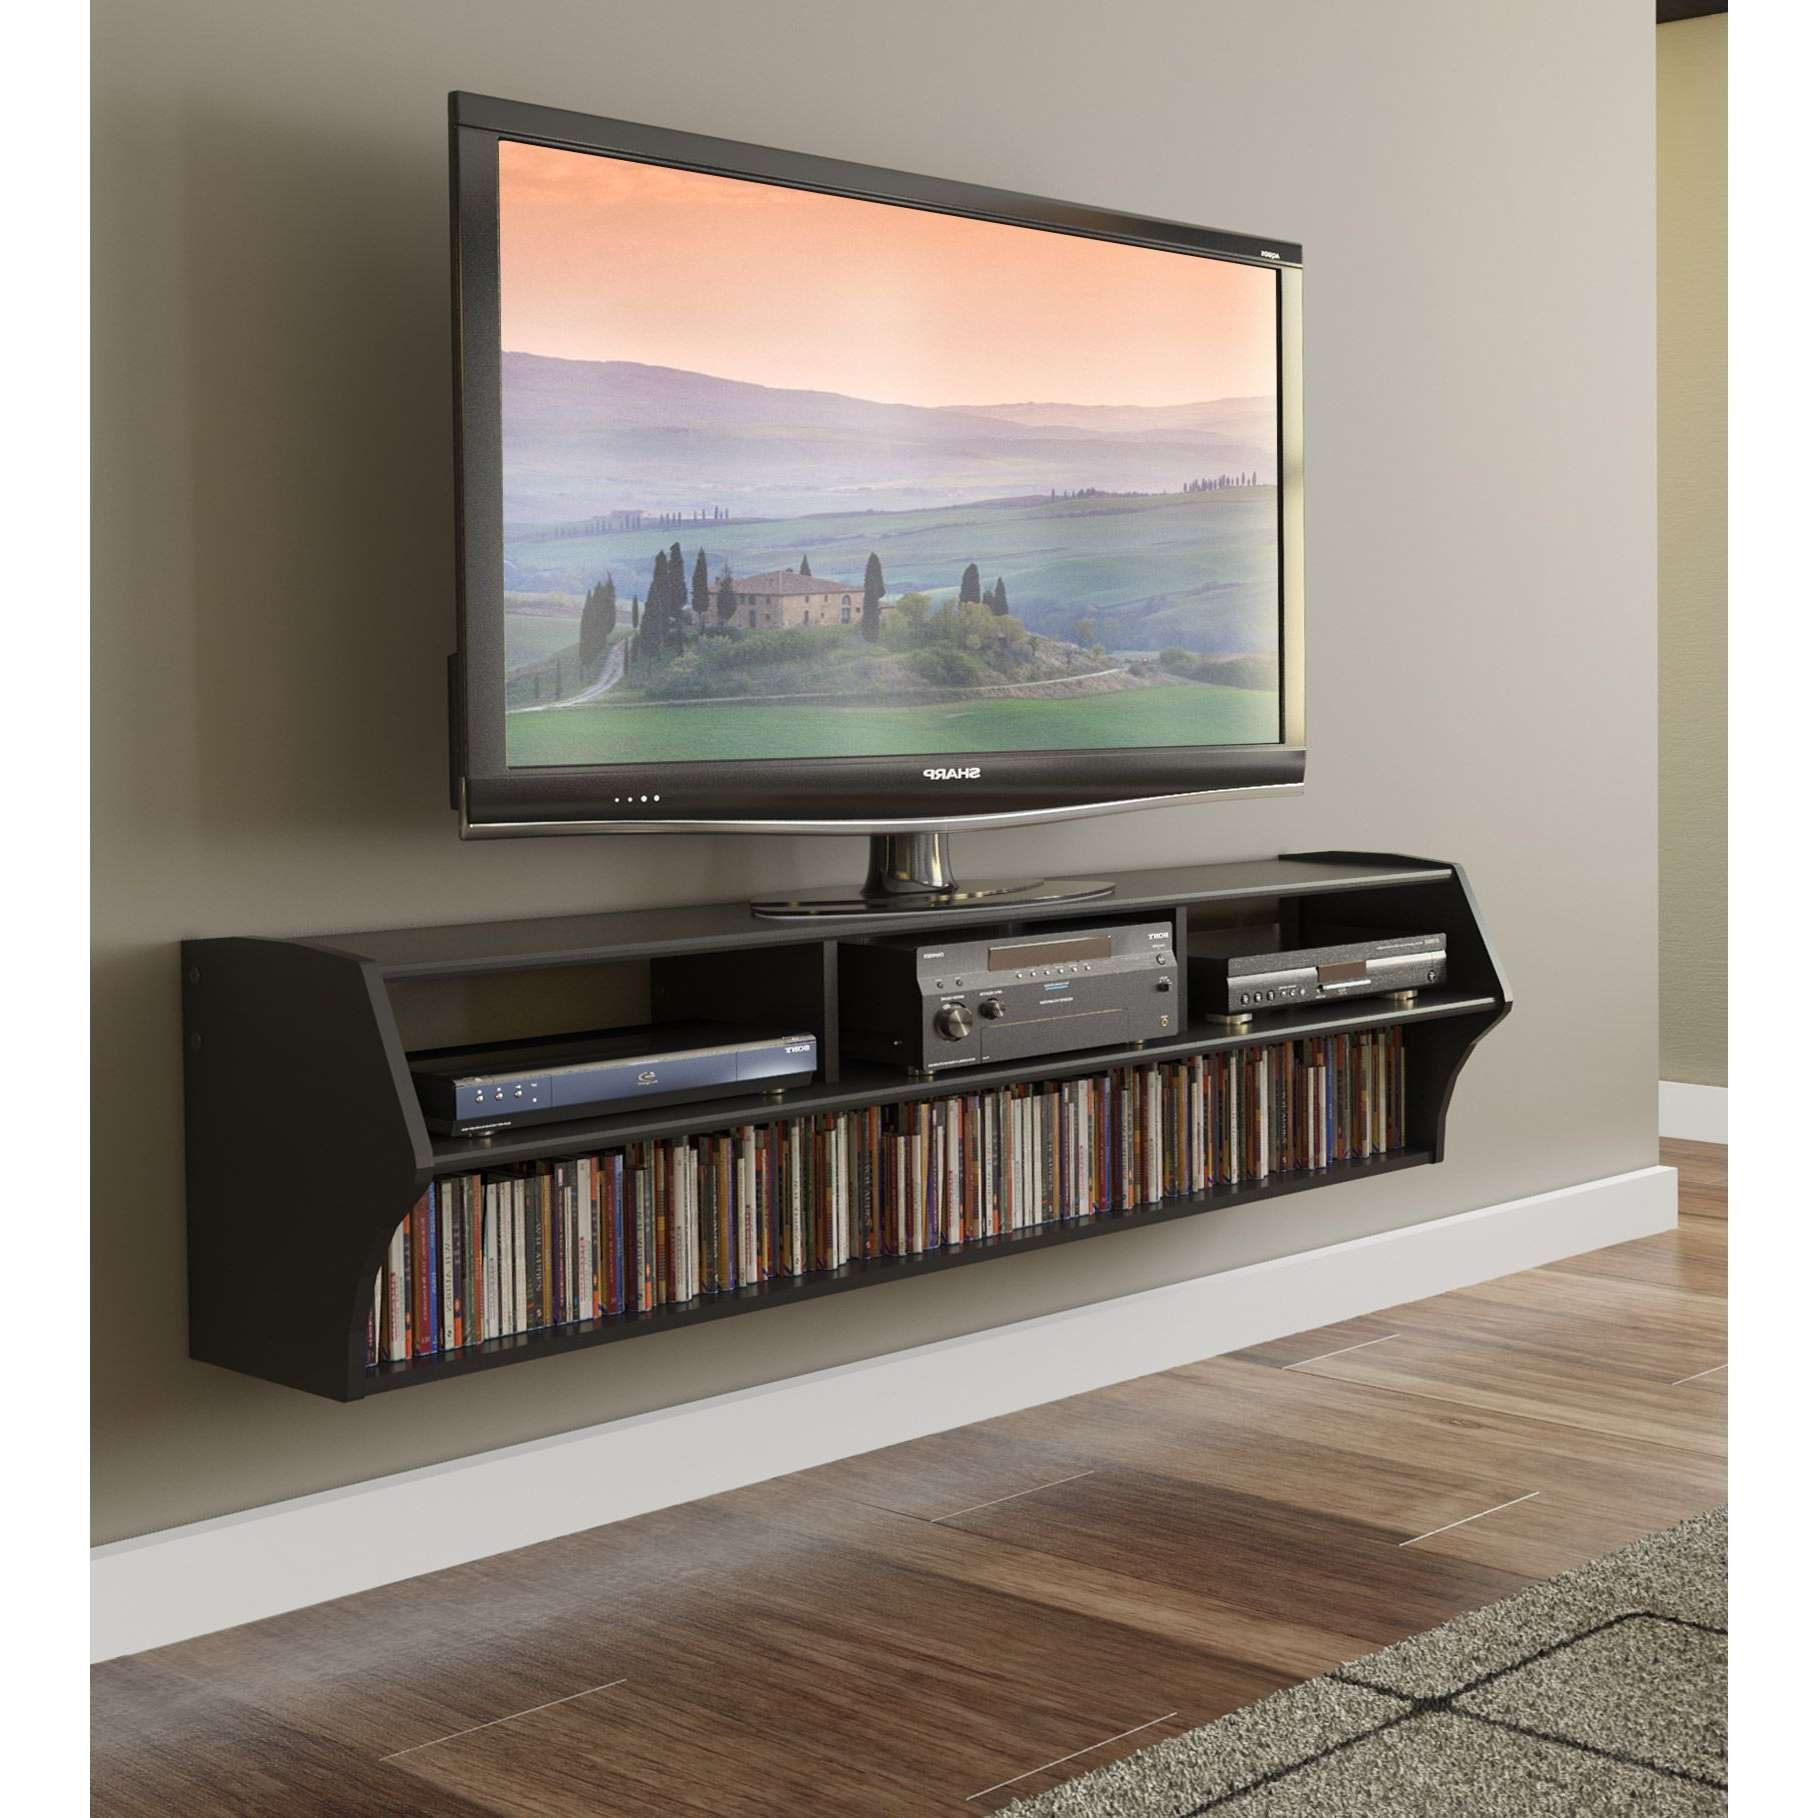 Black Long Tv Stand Incredible Photos Inspirations Wooden Rustic Intended For Long Tv Cabinets Furniture (View 5 of 20)